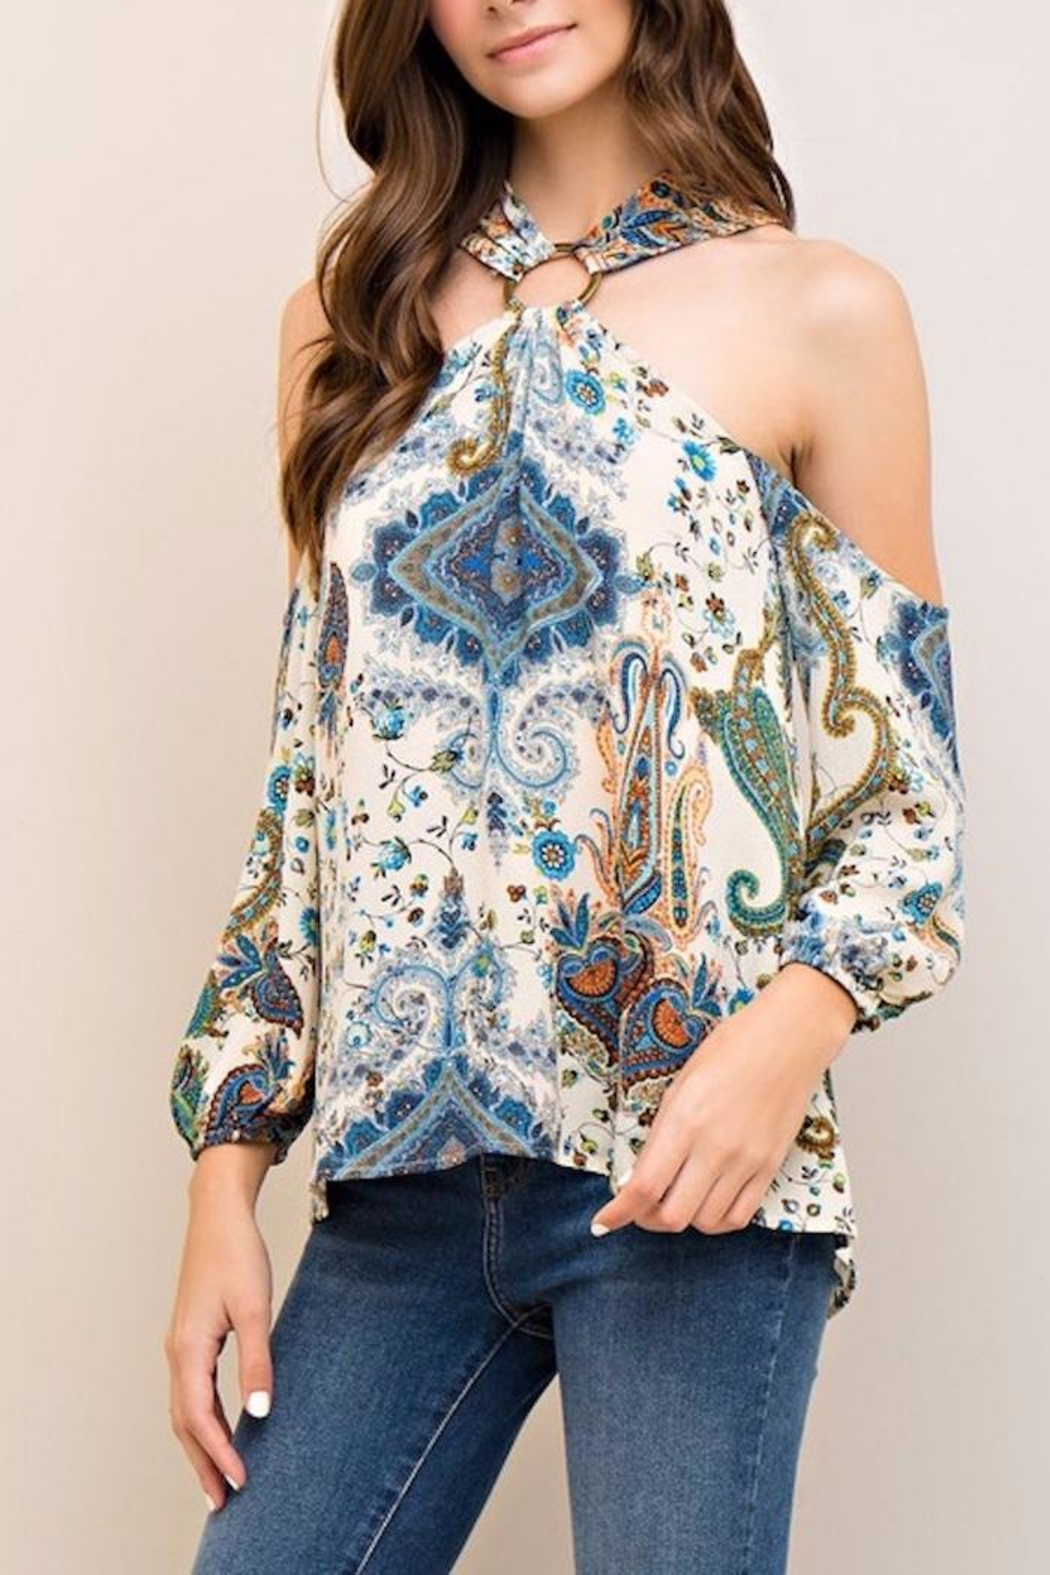 People Outfitter Limelight Paisley Top - Front Full Image